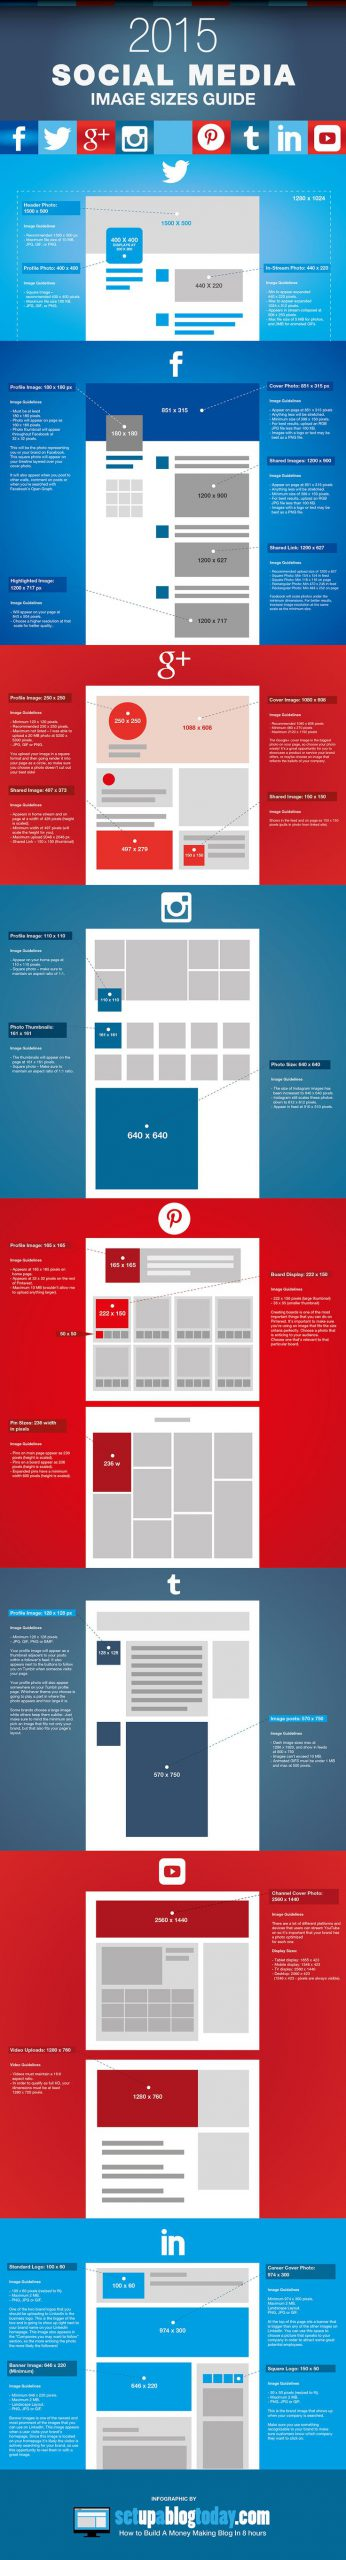 social media images sizes guides